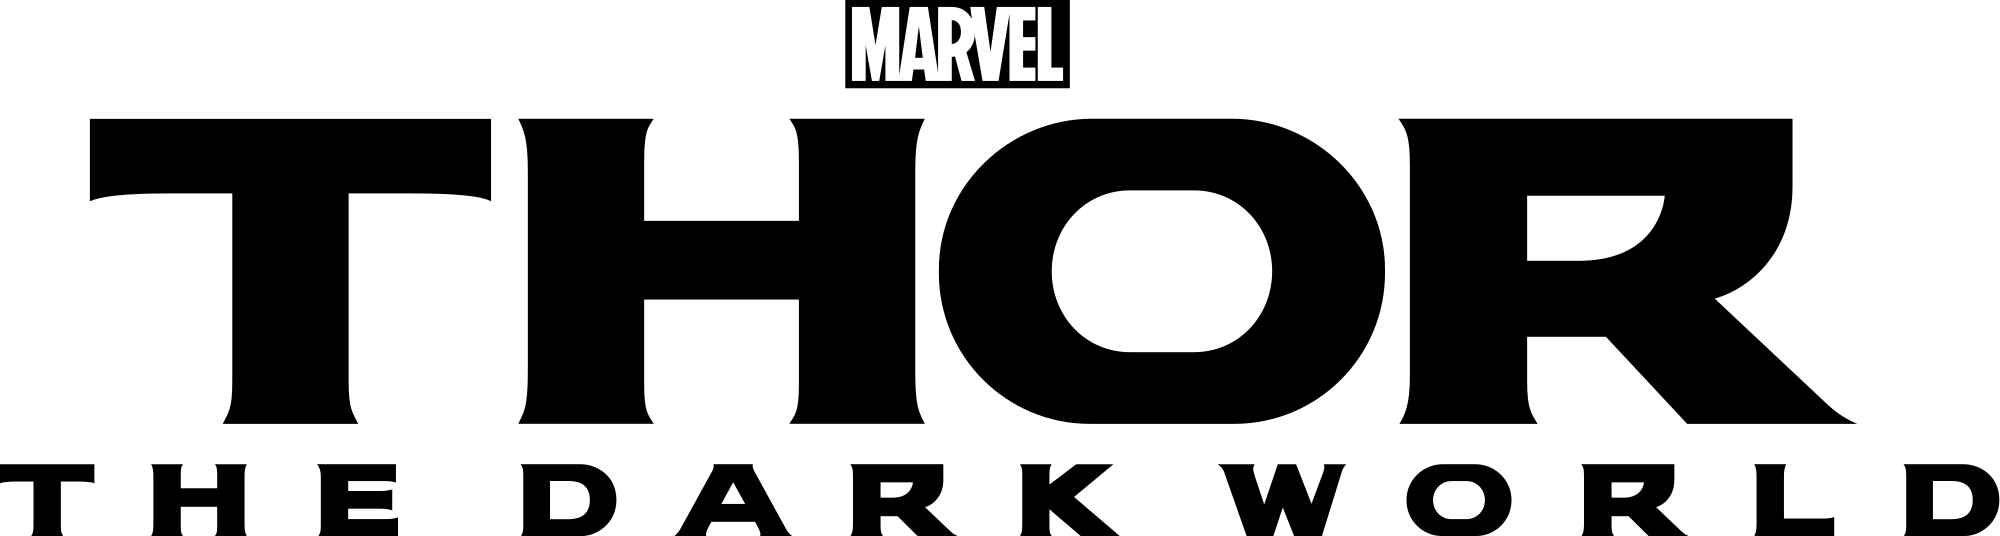 Thor svg #2, Download drawings